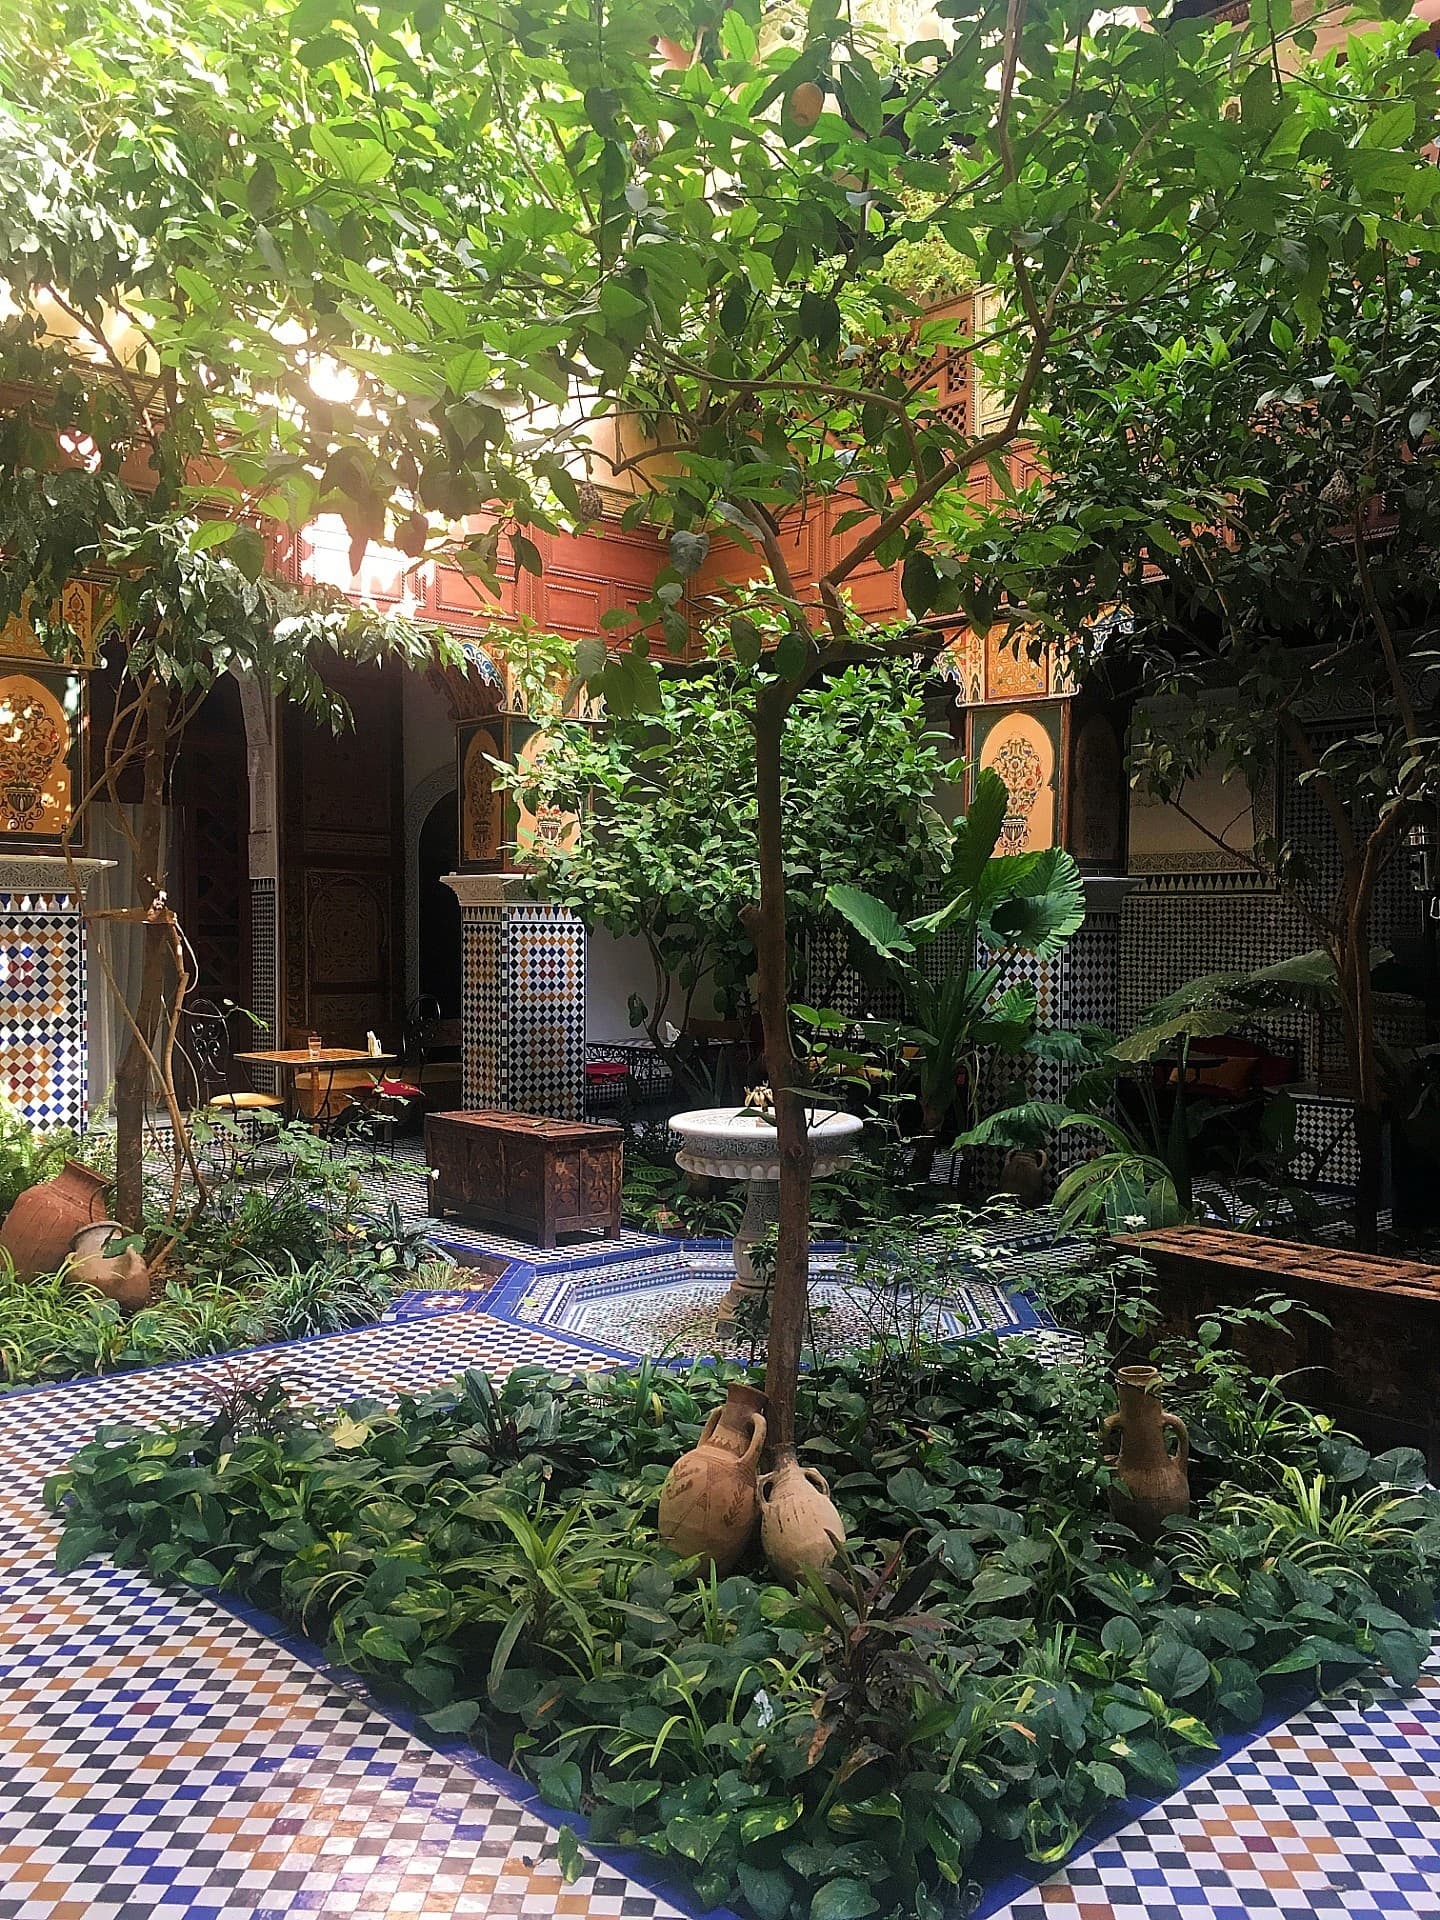 Courtyard of Riad al-Tayyur.